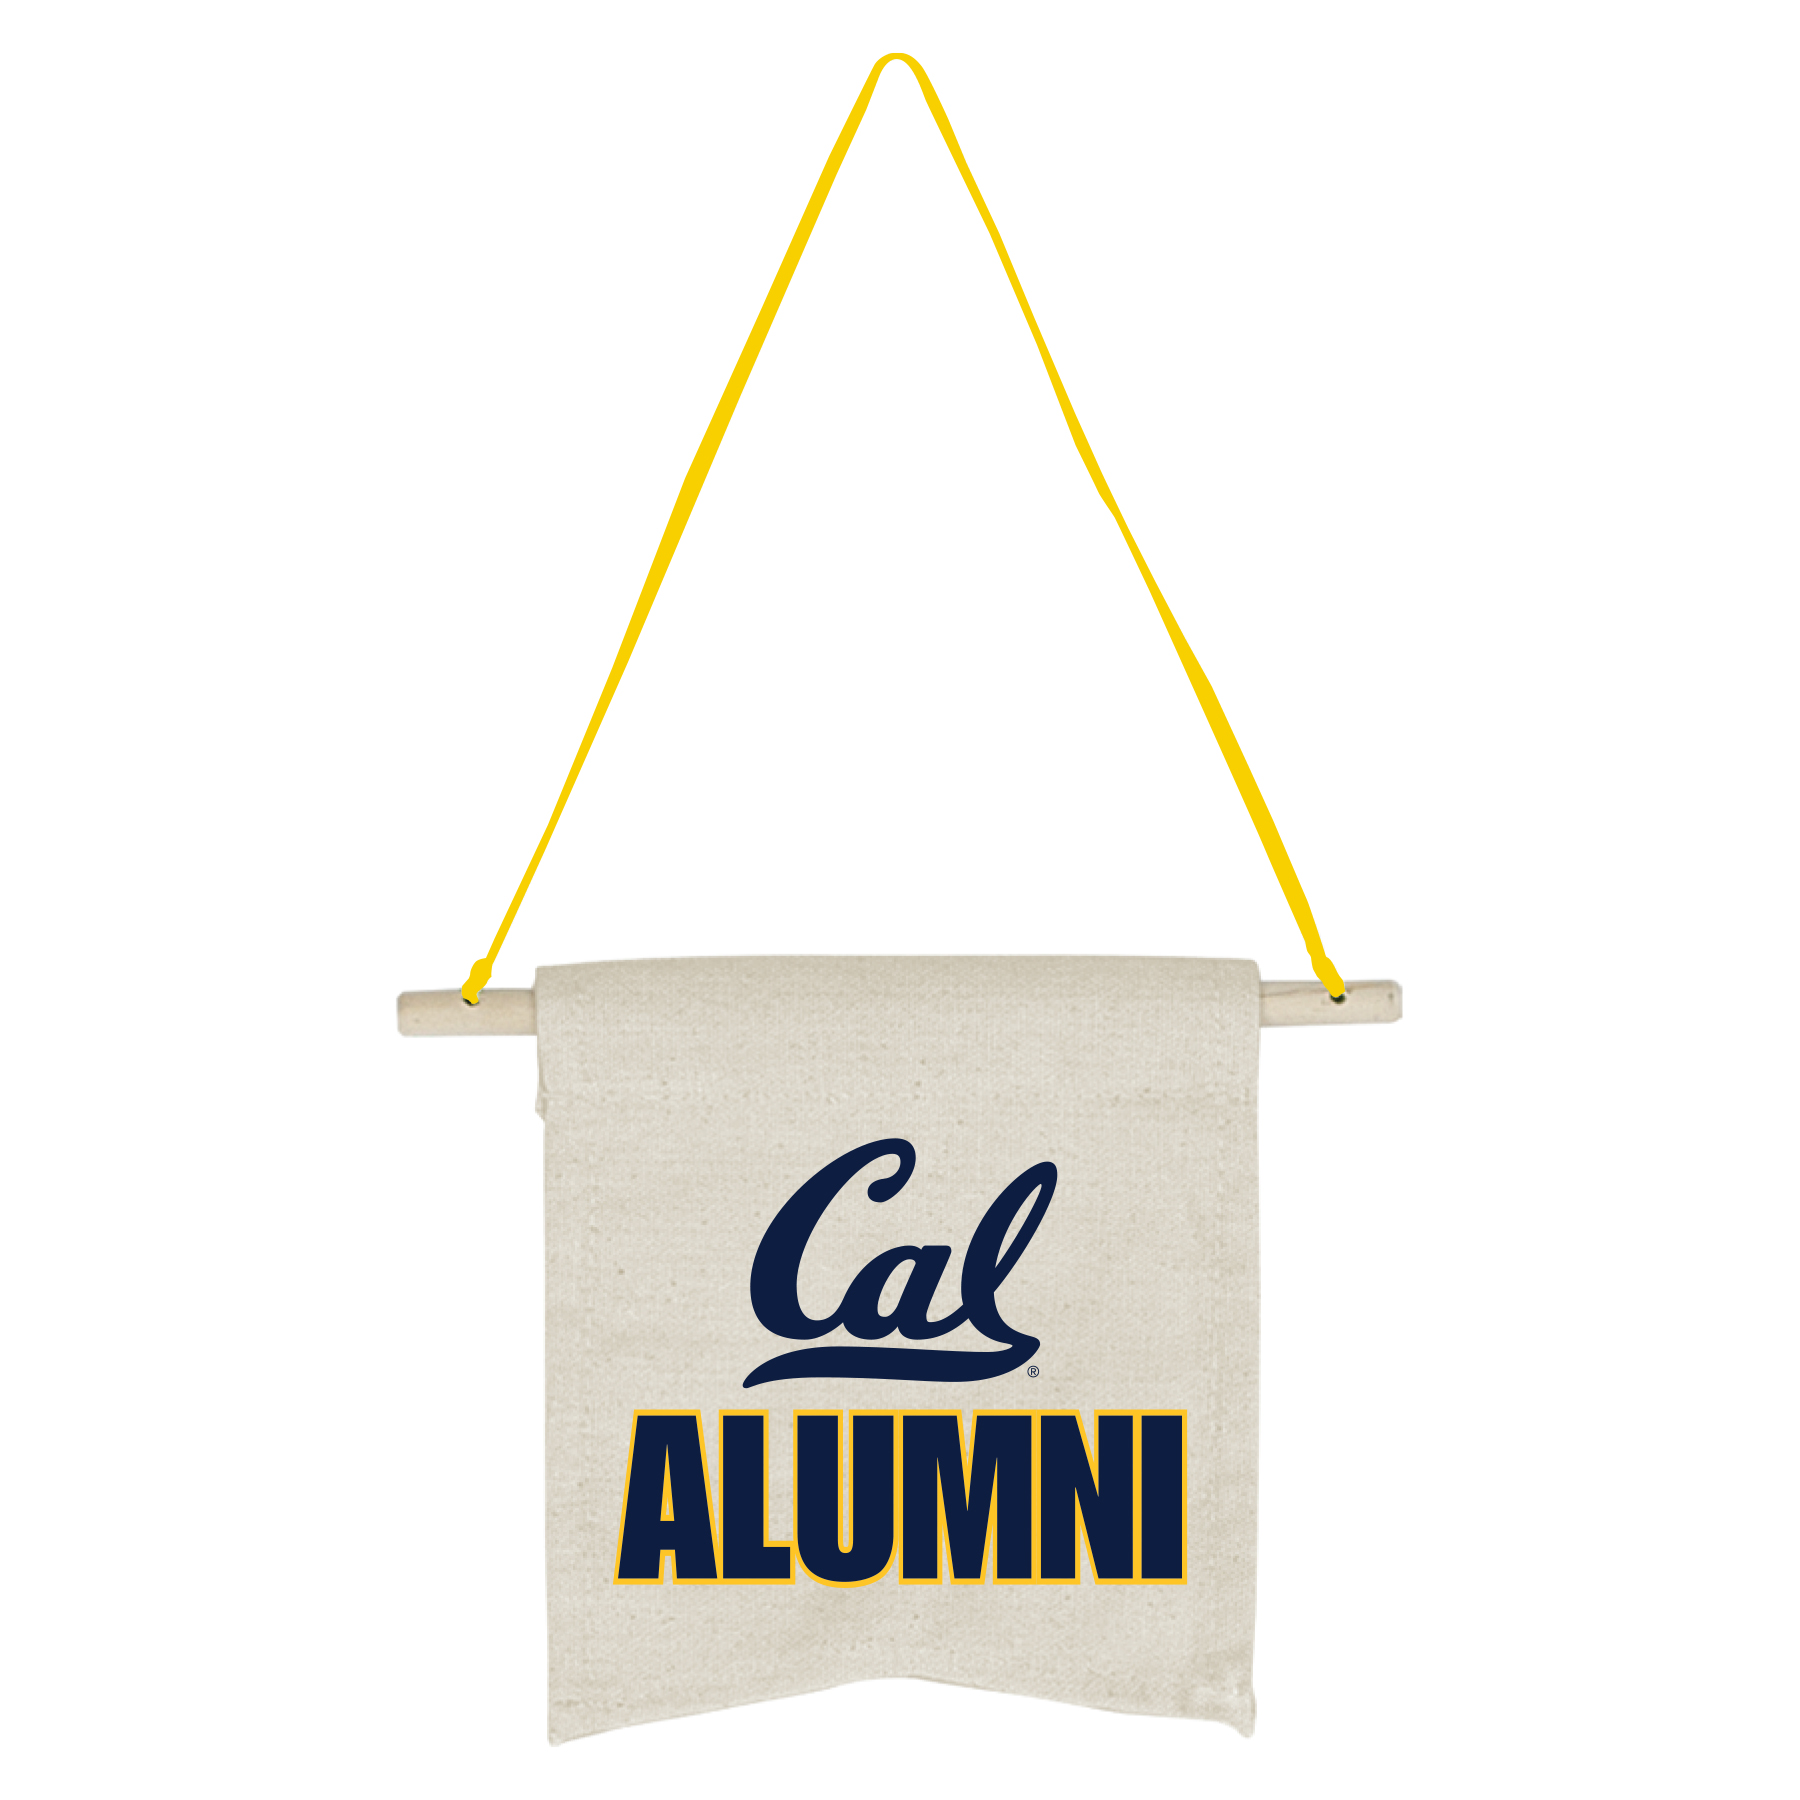 Detailed image of Cal Alumni Canvas Banner